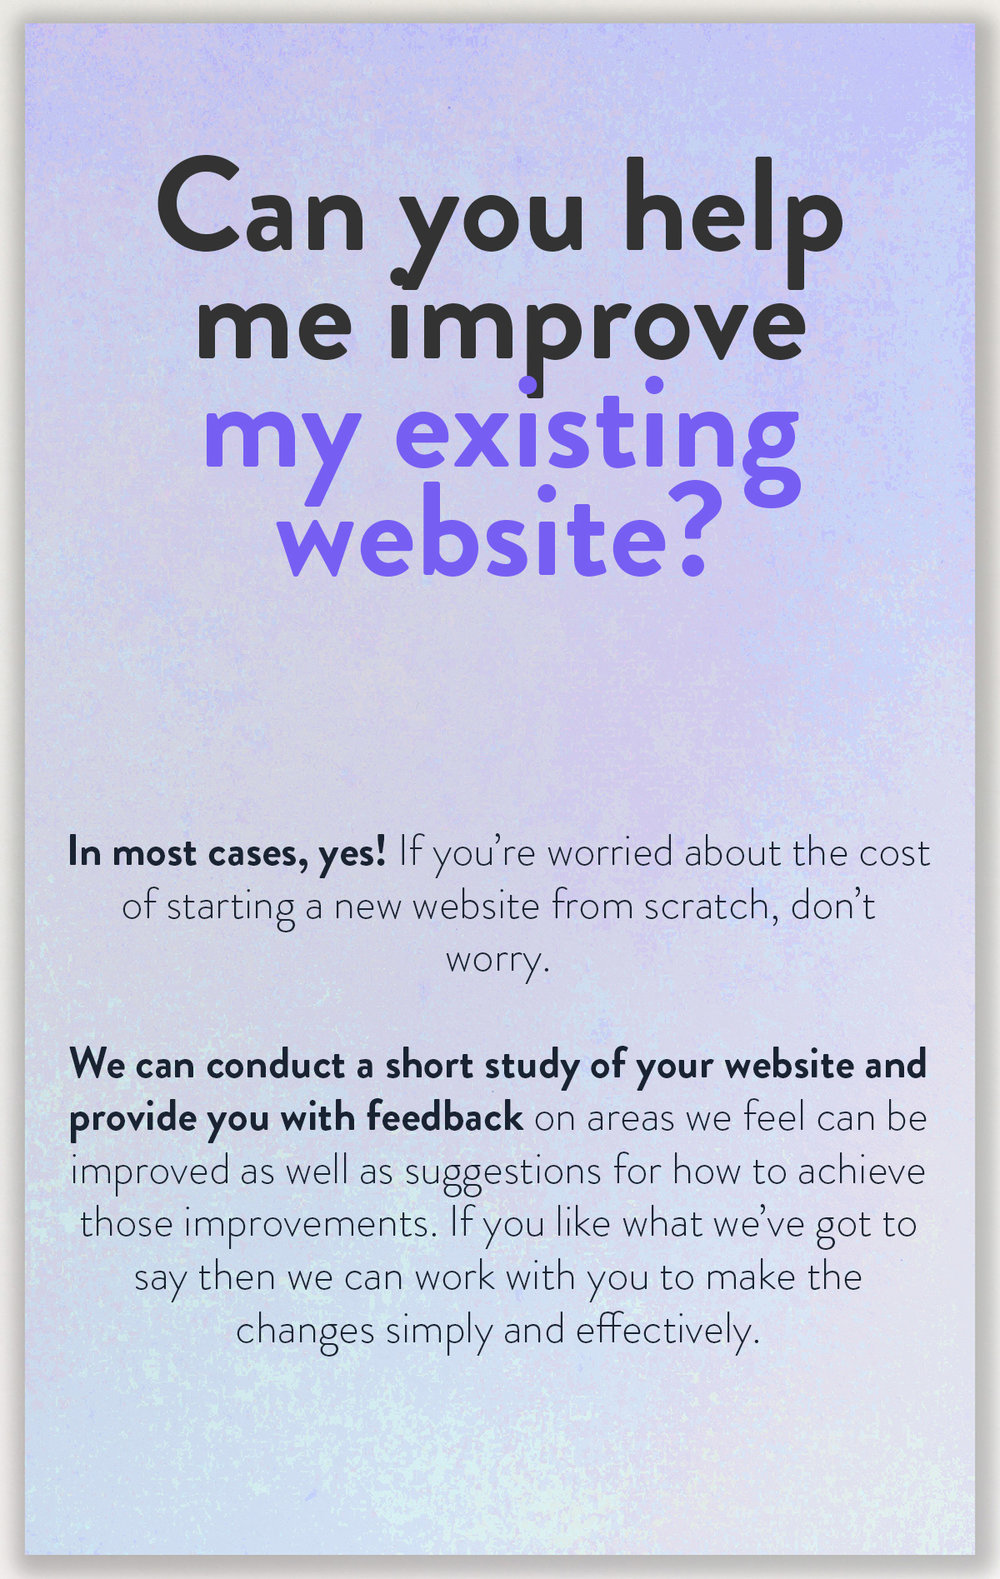 improve-my-existing-website.jpg